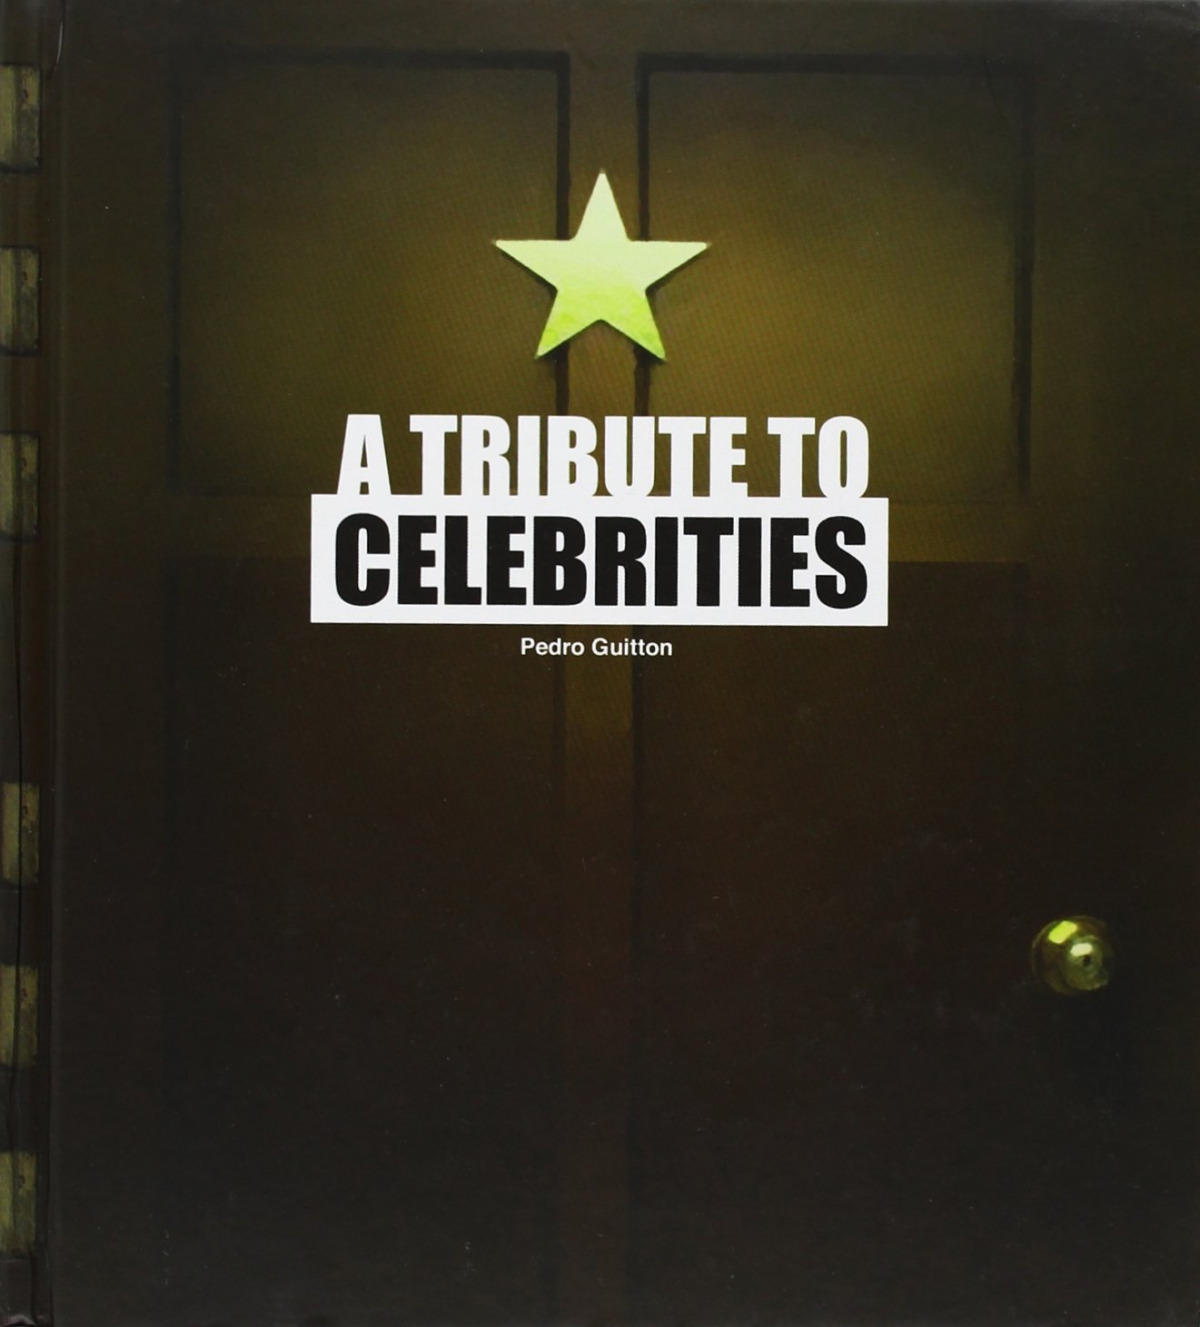 A tribute to celebrities - Pedro Guitton